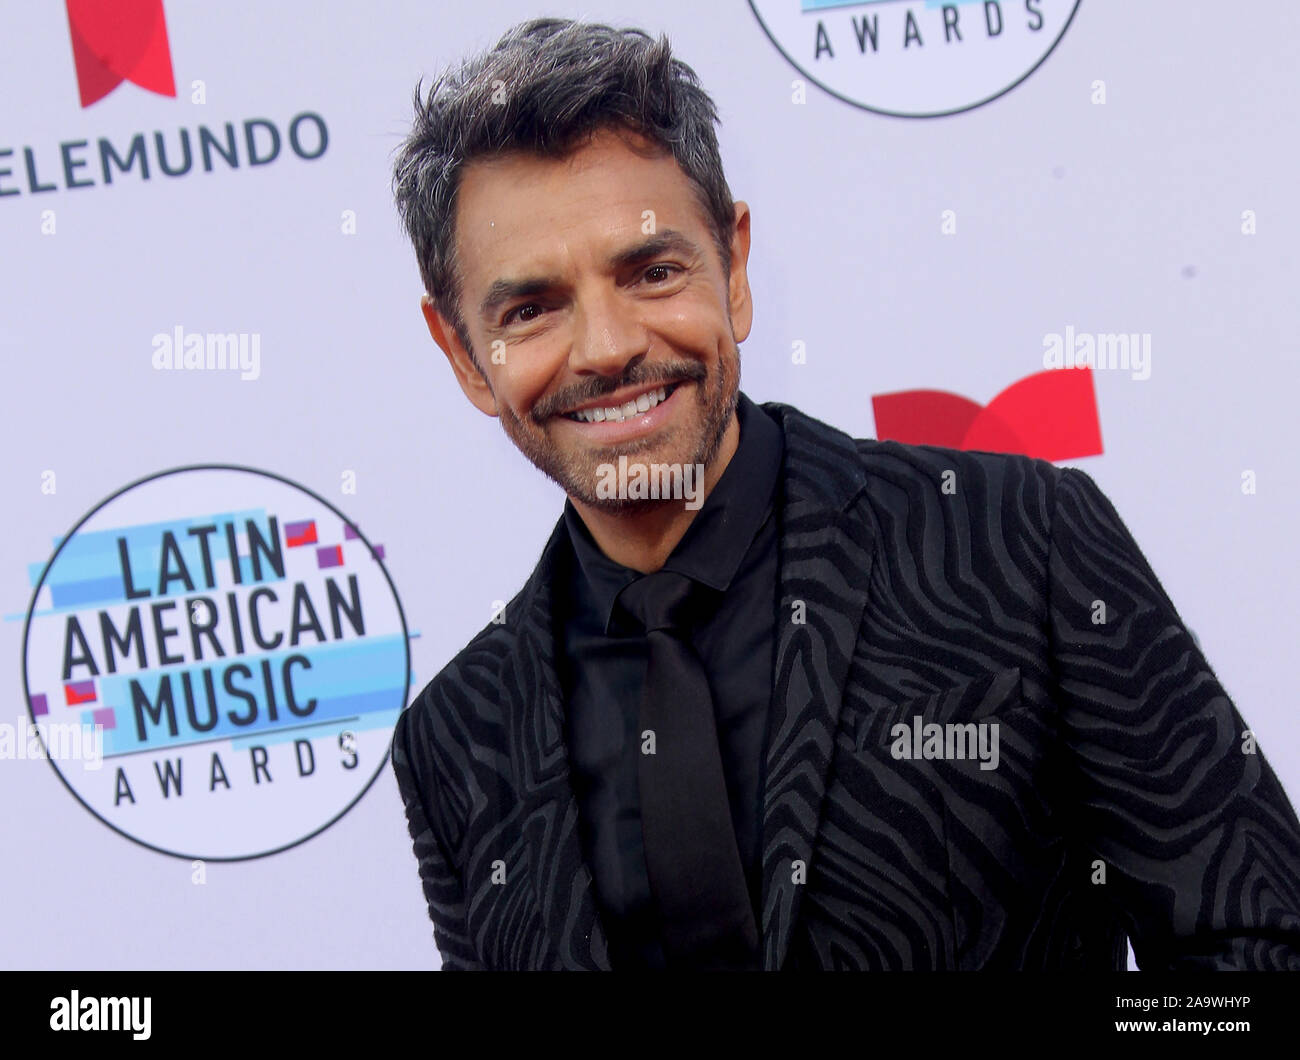 Latin American Music Awards 2019 held at the Dolby Theatre in Hollywood, California. Featuring: Eugenio Derbez Where: Los Angeles, California, United States When: 17 Oct 2019 Credit: Adriana M. Barraza/WENN.com Stock Photo